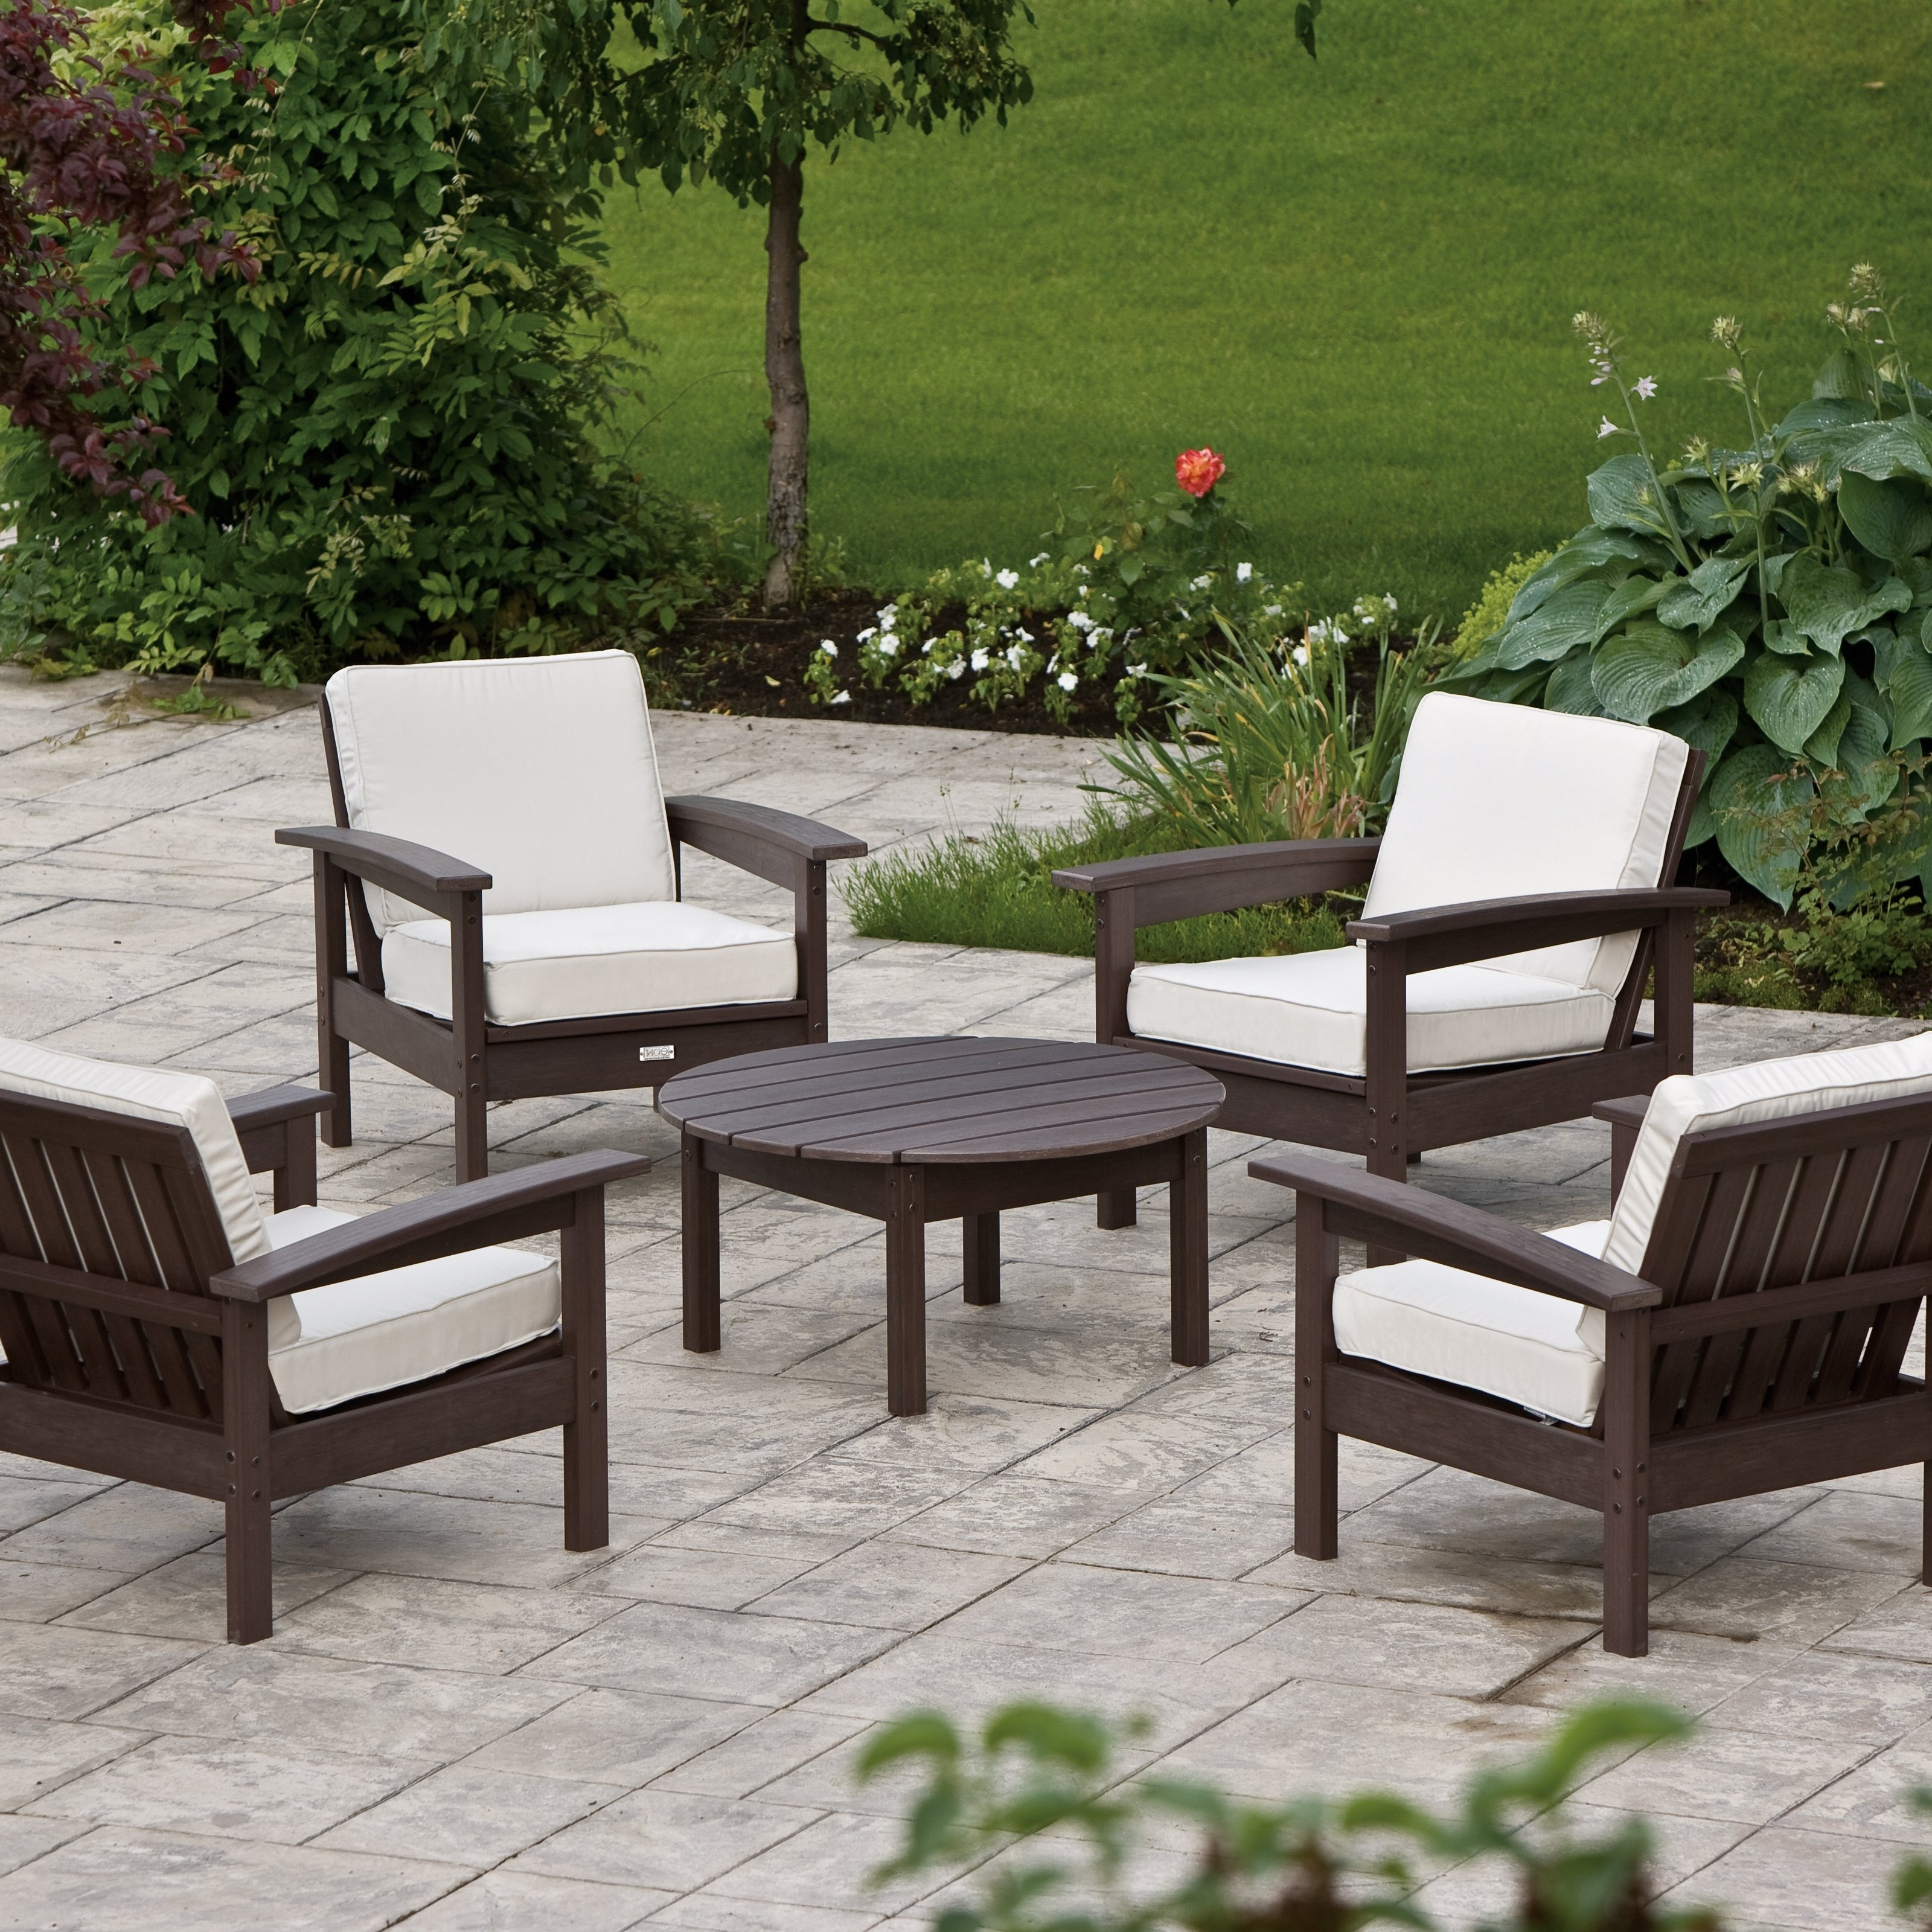 Patio Conversation Sets Without Cushions Regarding 2018 Outdoor Patio Furniture Without Cushions – Furniture Designs (View 8 of 15)